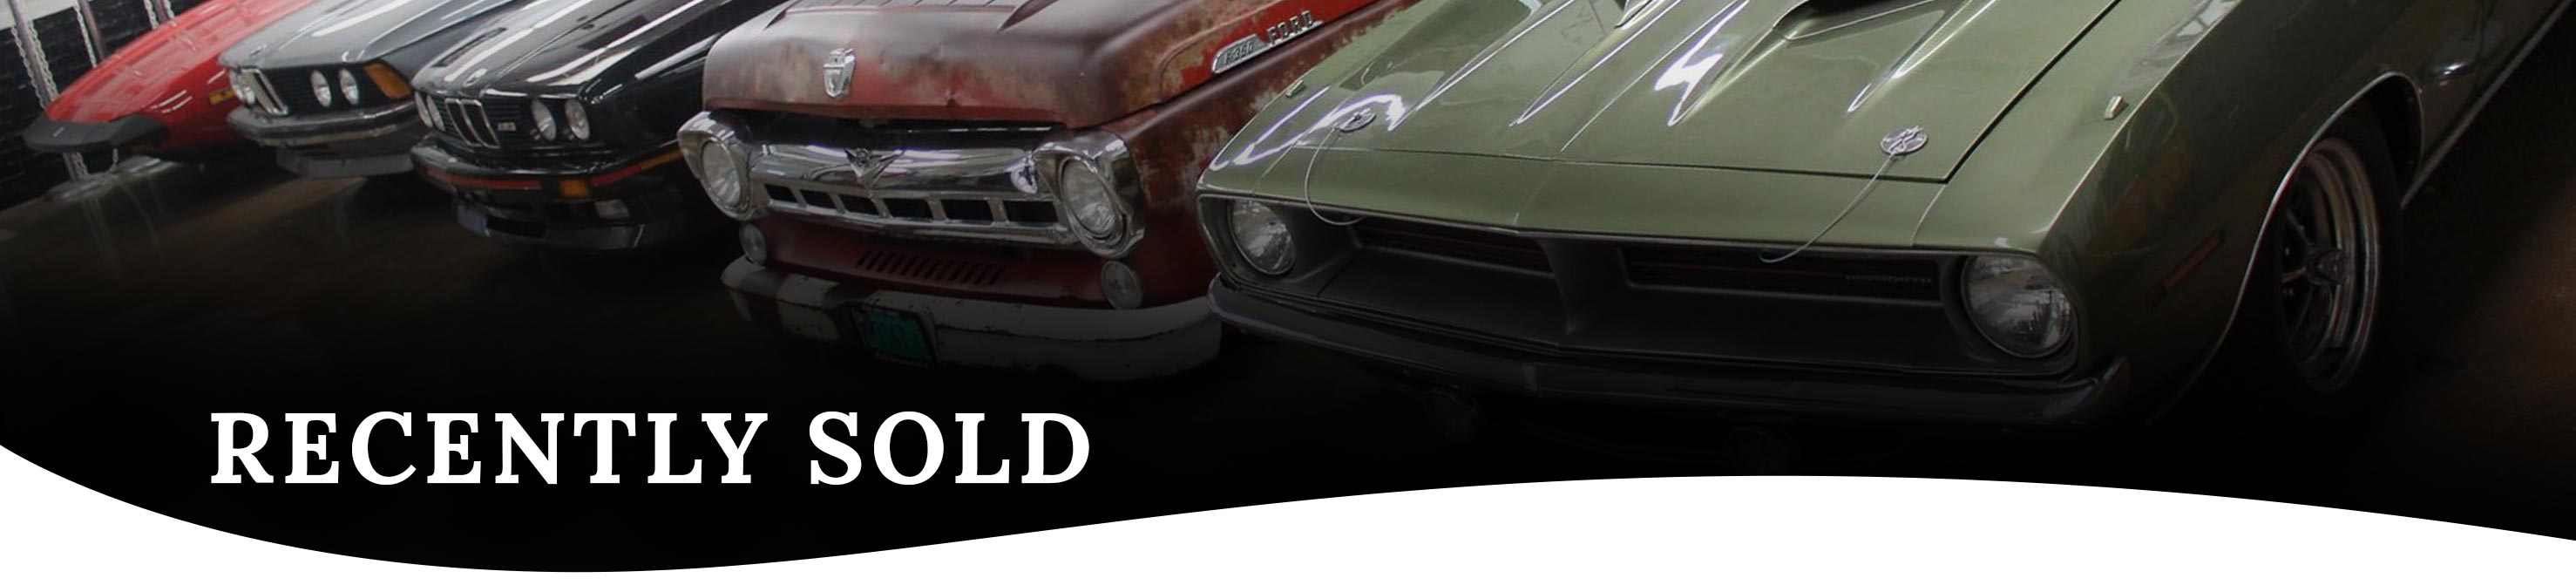 Chicagocarclub sold banner